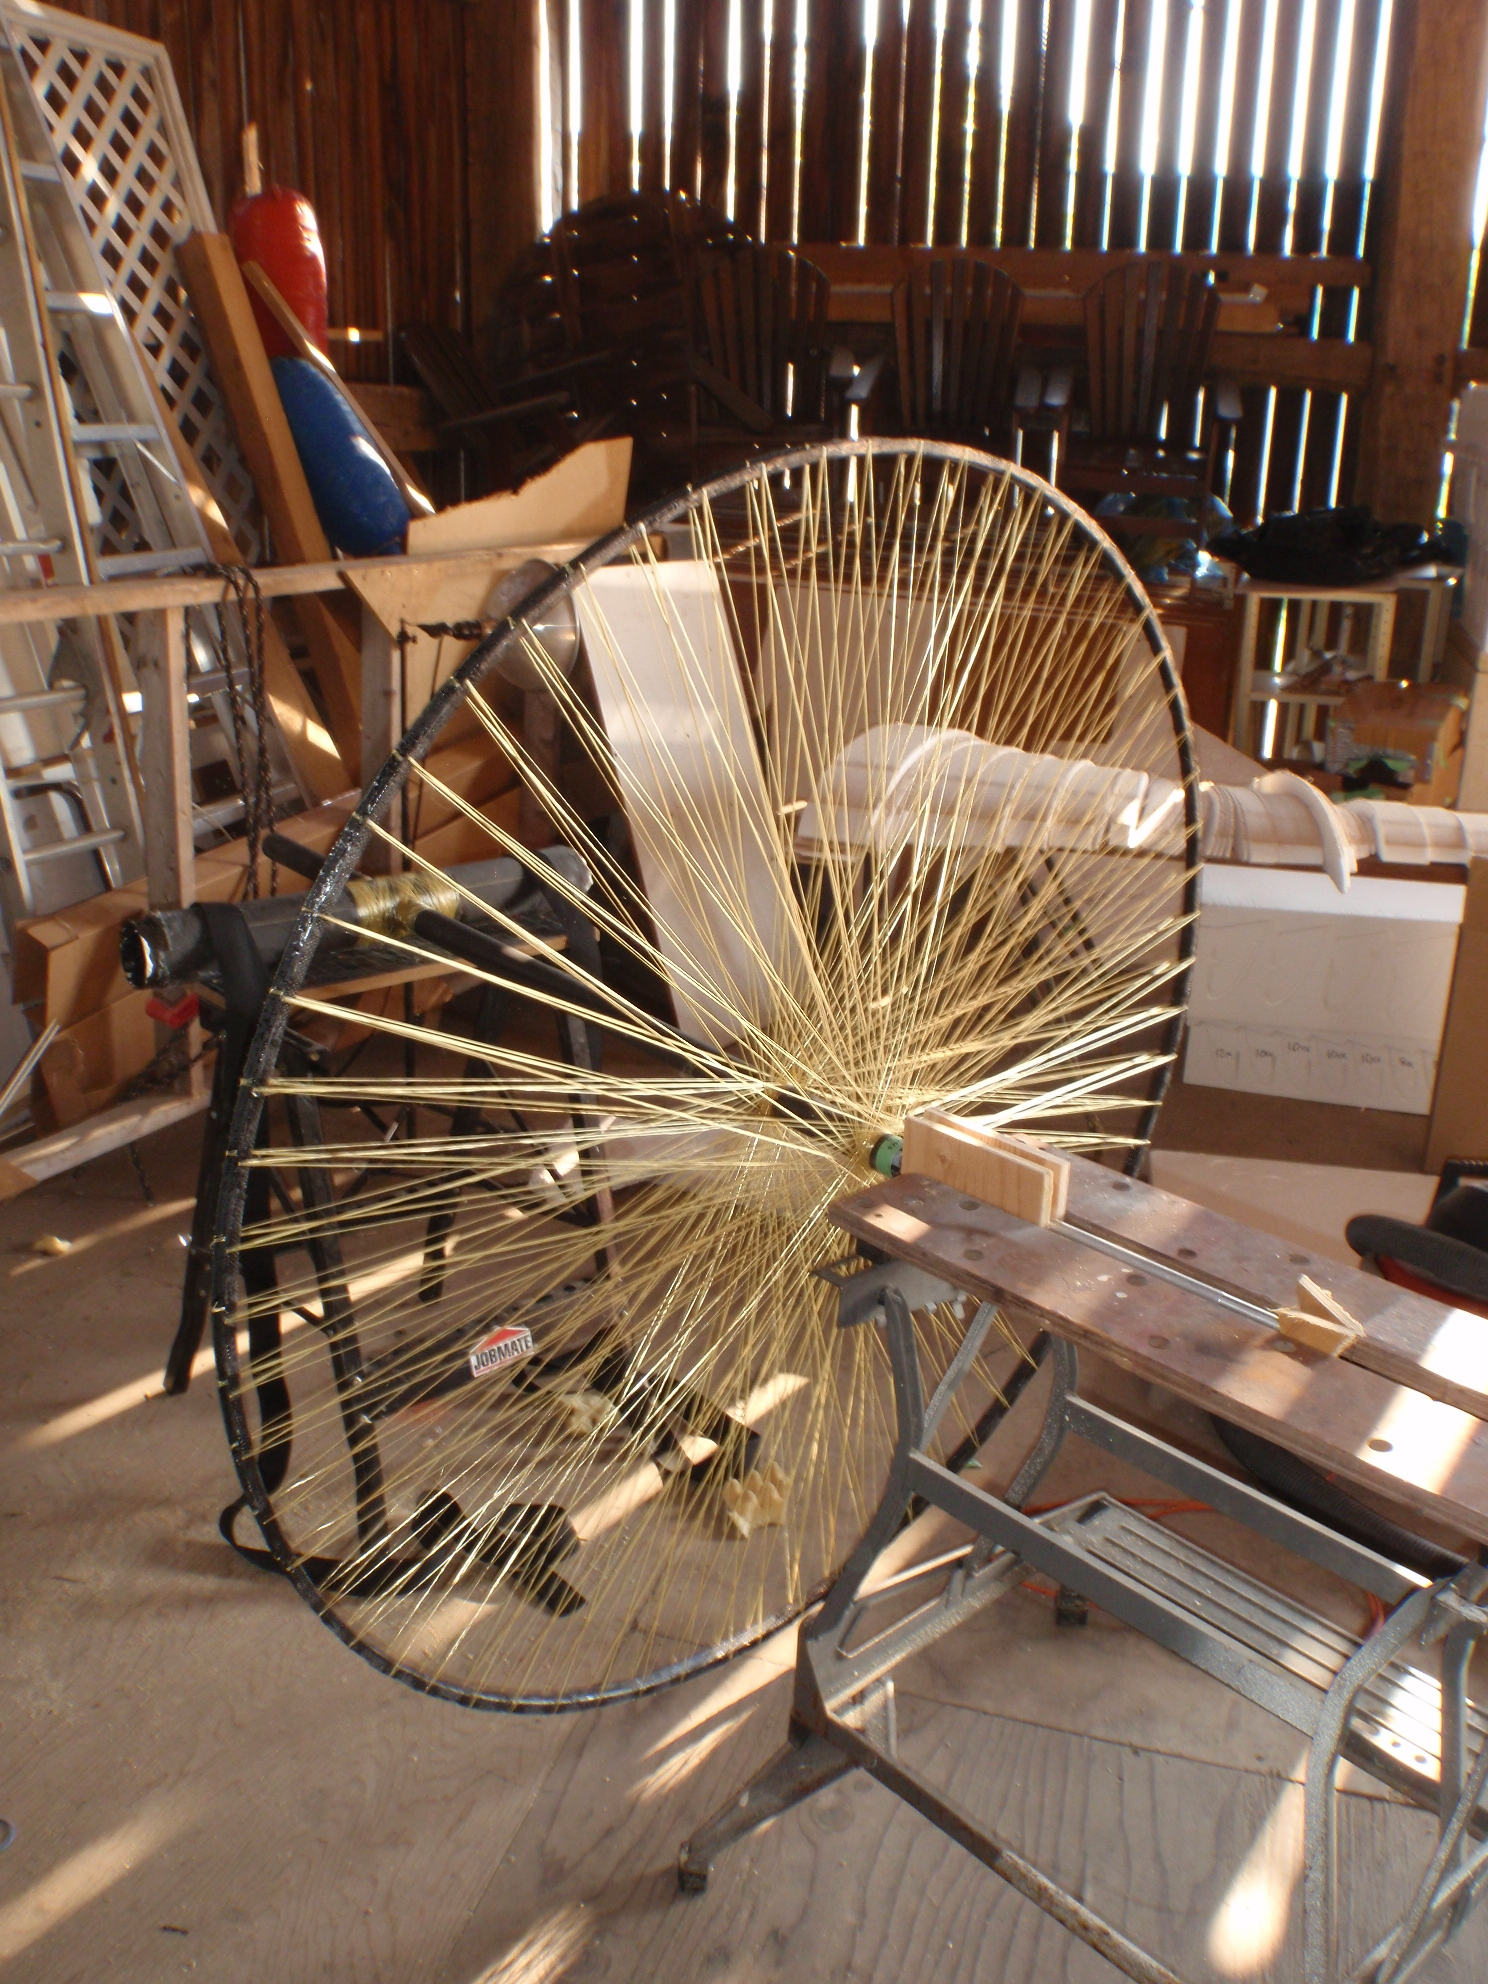 The drive spool has been mounted on a pair of saw horses for testing. The support near the spool is free to rotate, while the T-joint behind the spool is fixed in place.